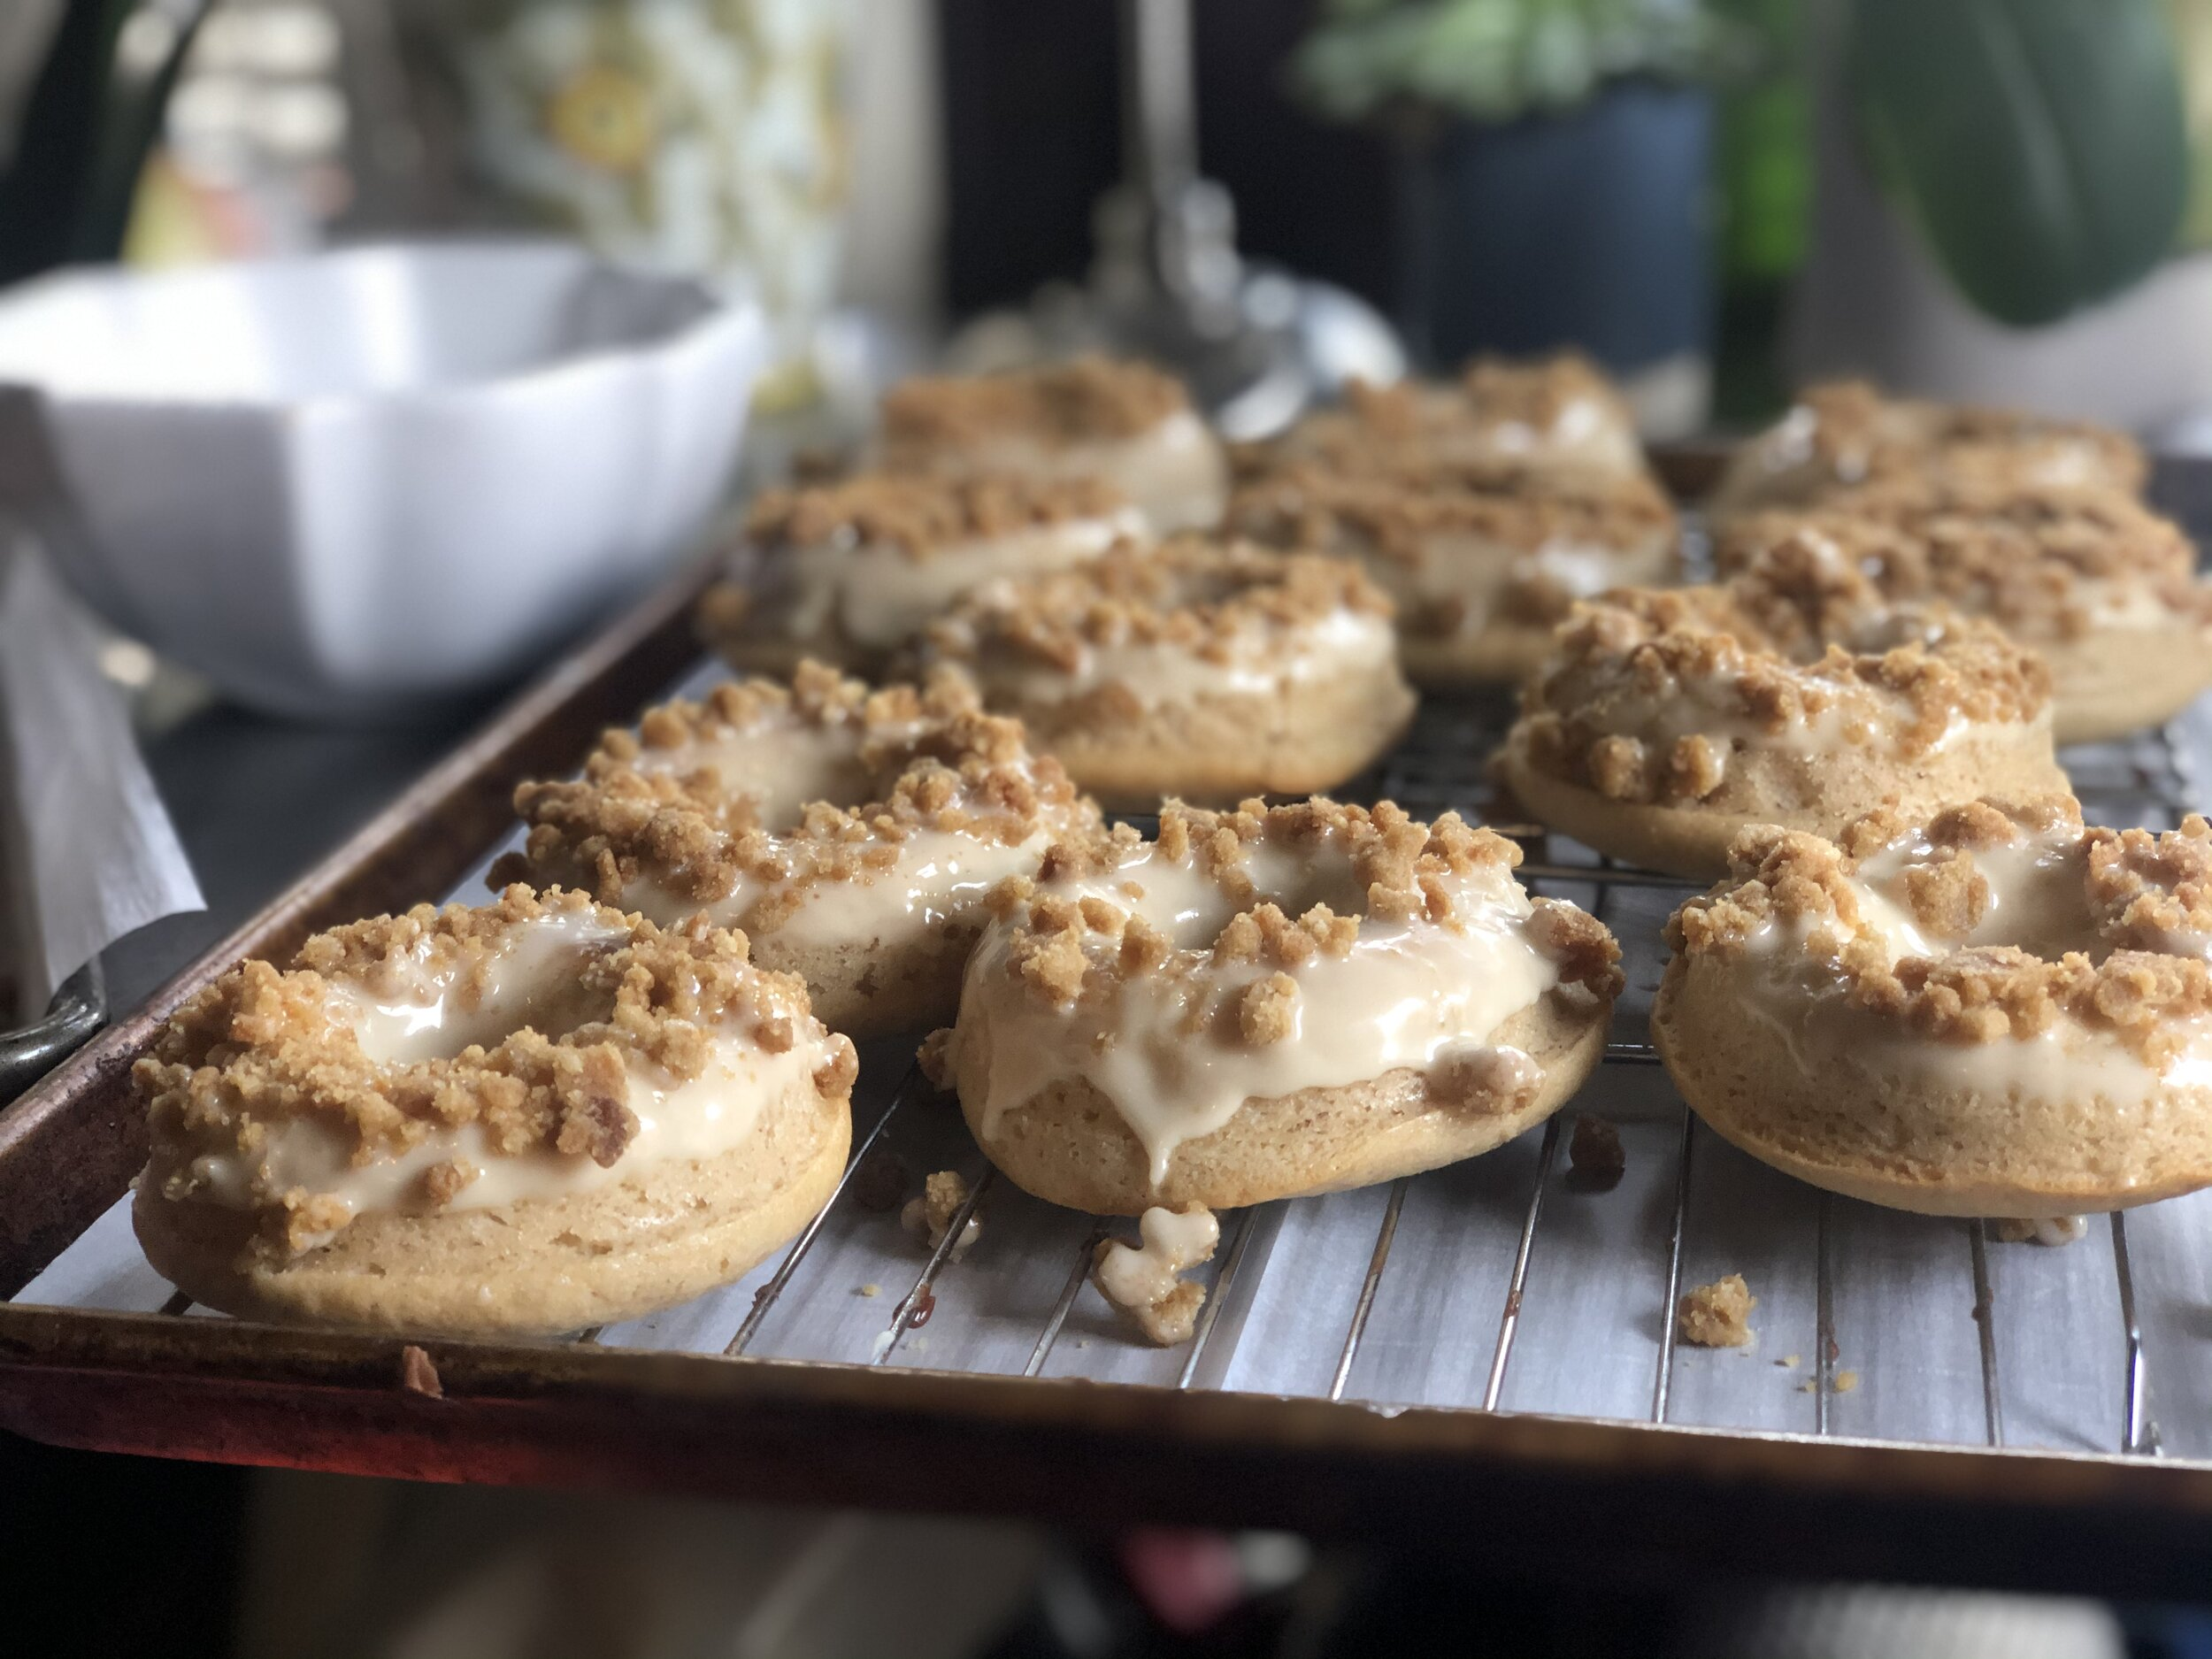 Buttermilk Maple Baked Donuts with Maple Glaze and Crumb Topping!